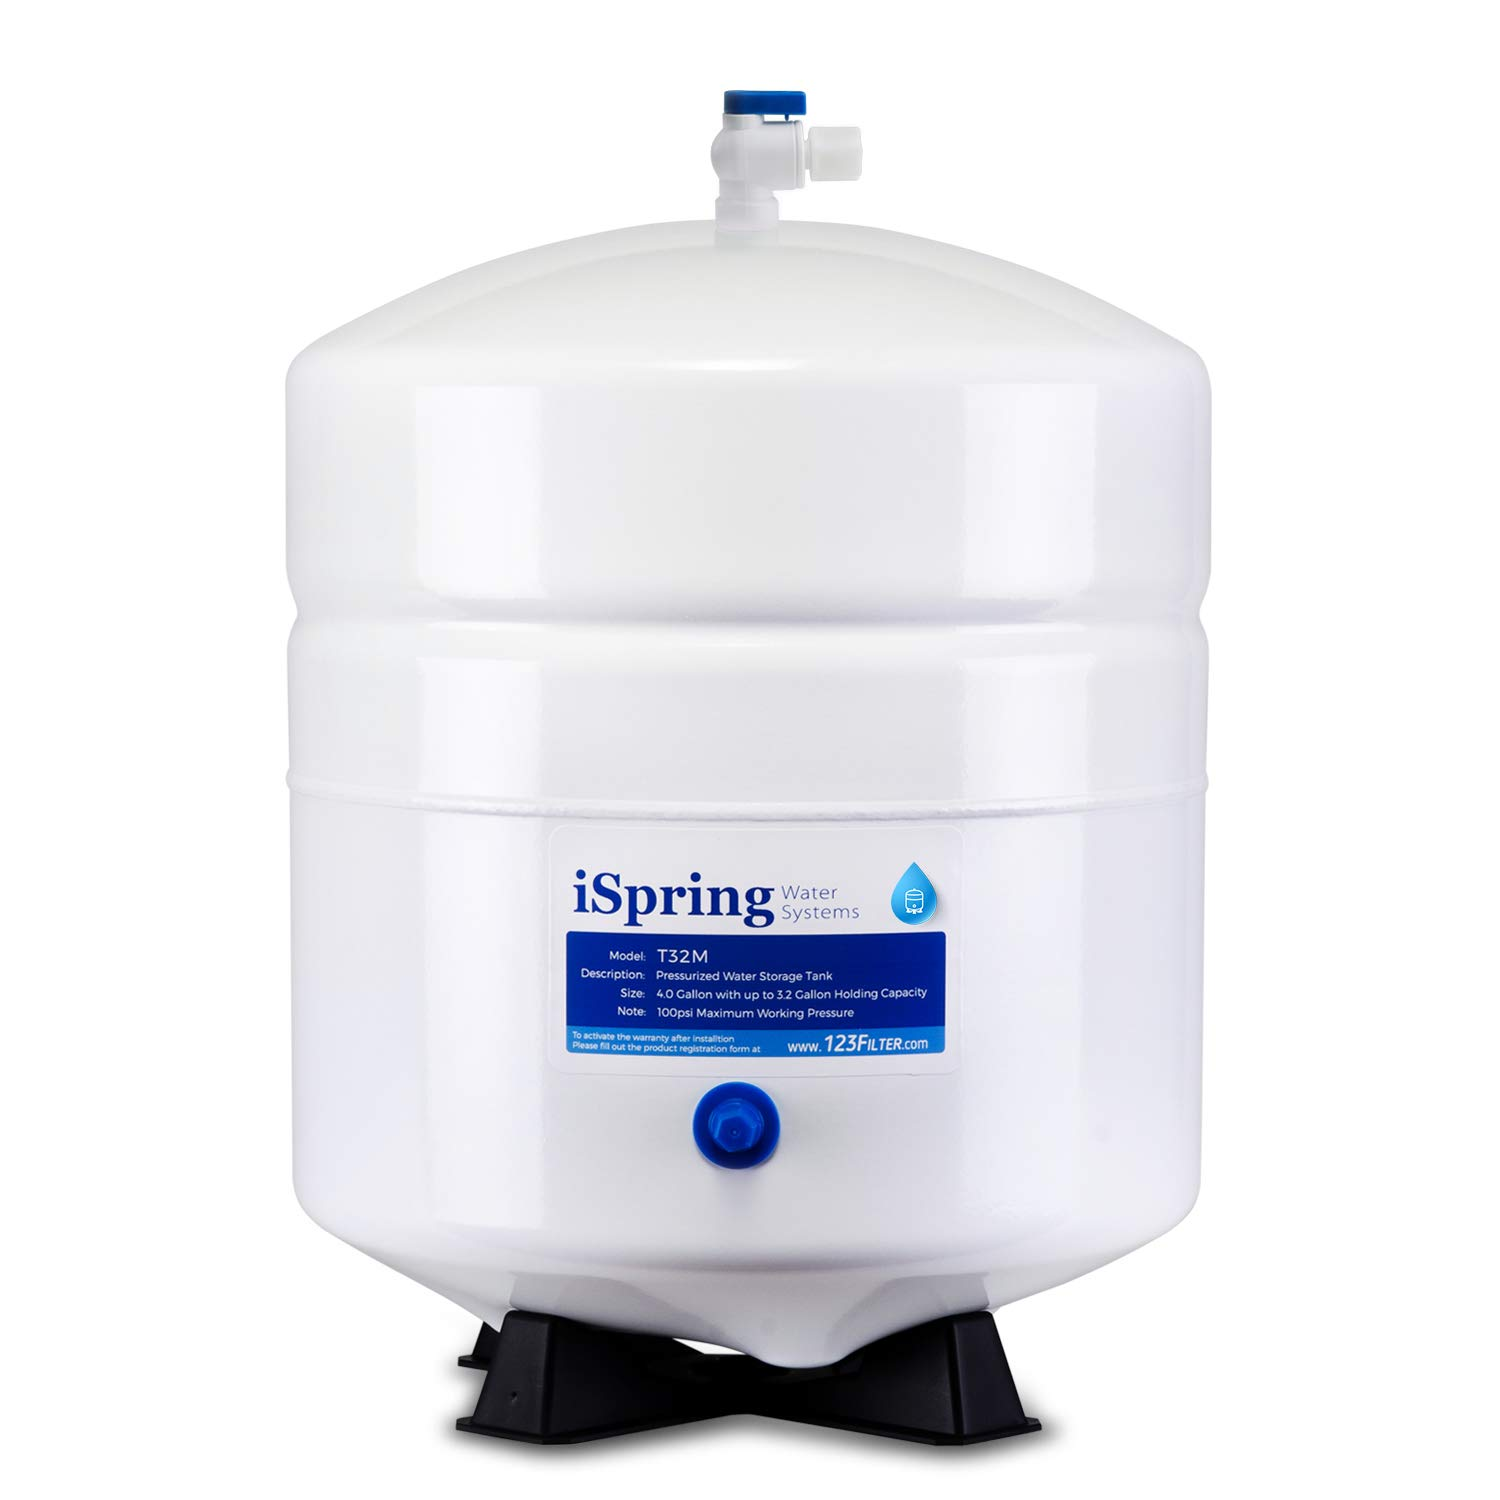 iSpring T32M Pressurized Water Storage Tank with Ball Valve for Reverse Osmosis RO Systems 4 Gallon